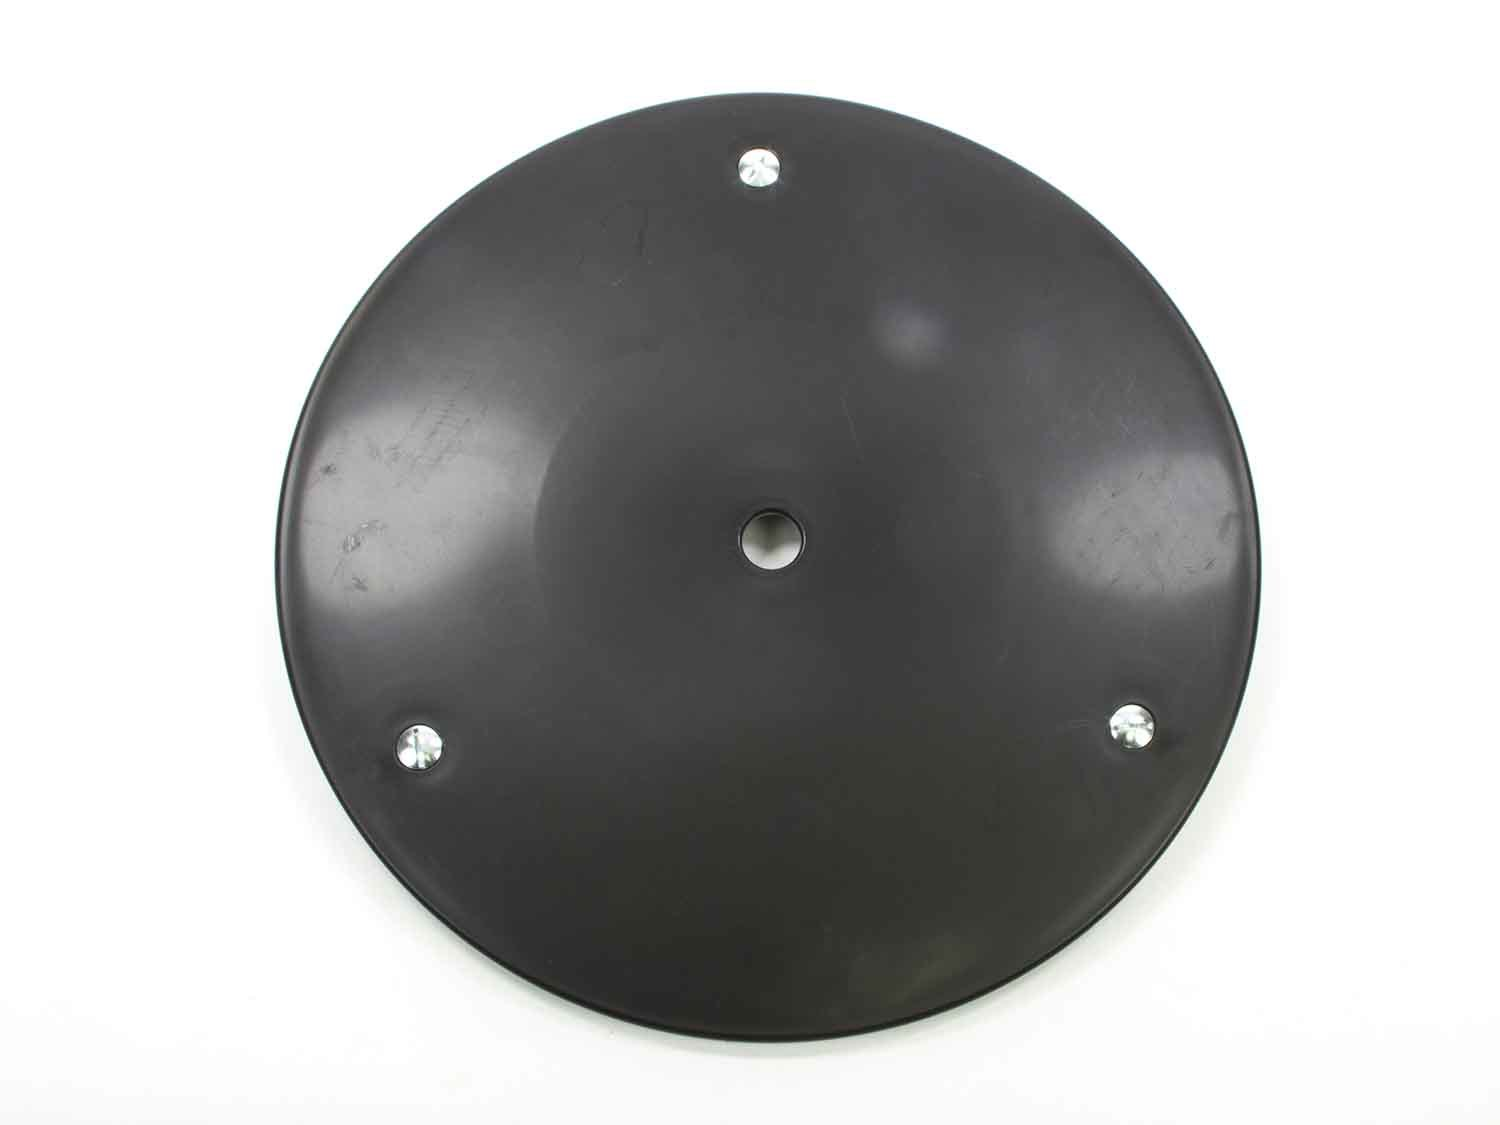 Aero Race 15in Mud Cover - Black  Wheel